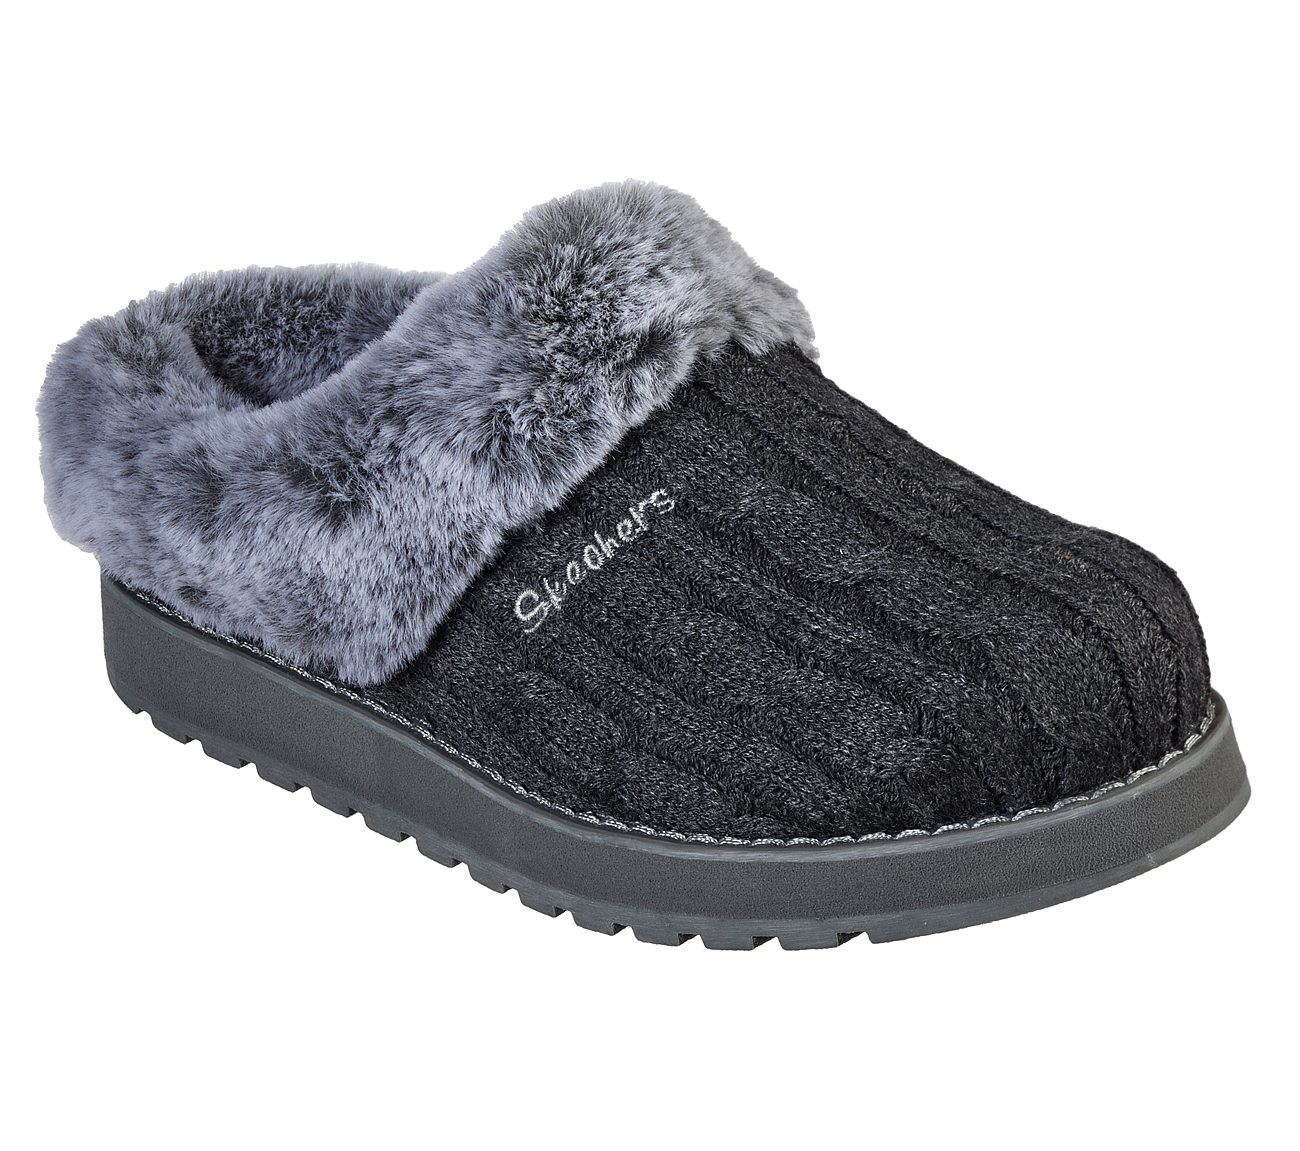 587f1713d438 Buy SKECHERS Keepsakes - Postage Comfort Shoes Shoes only  50.00